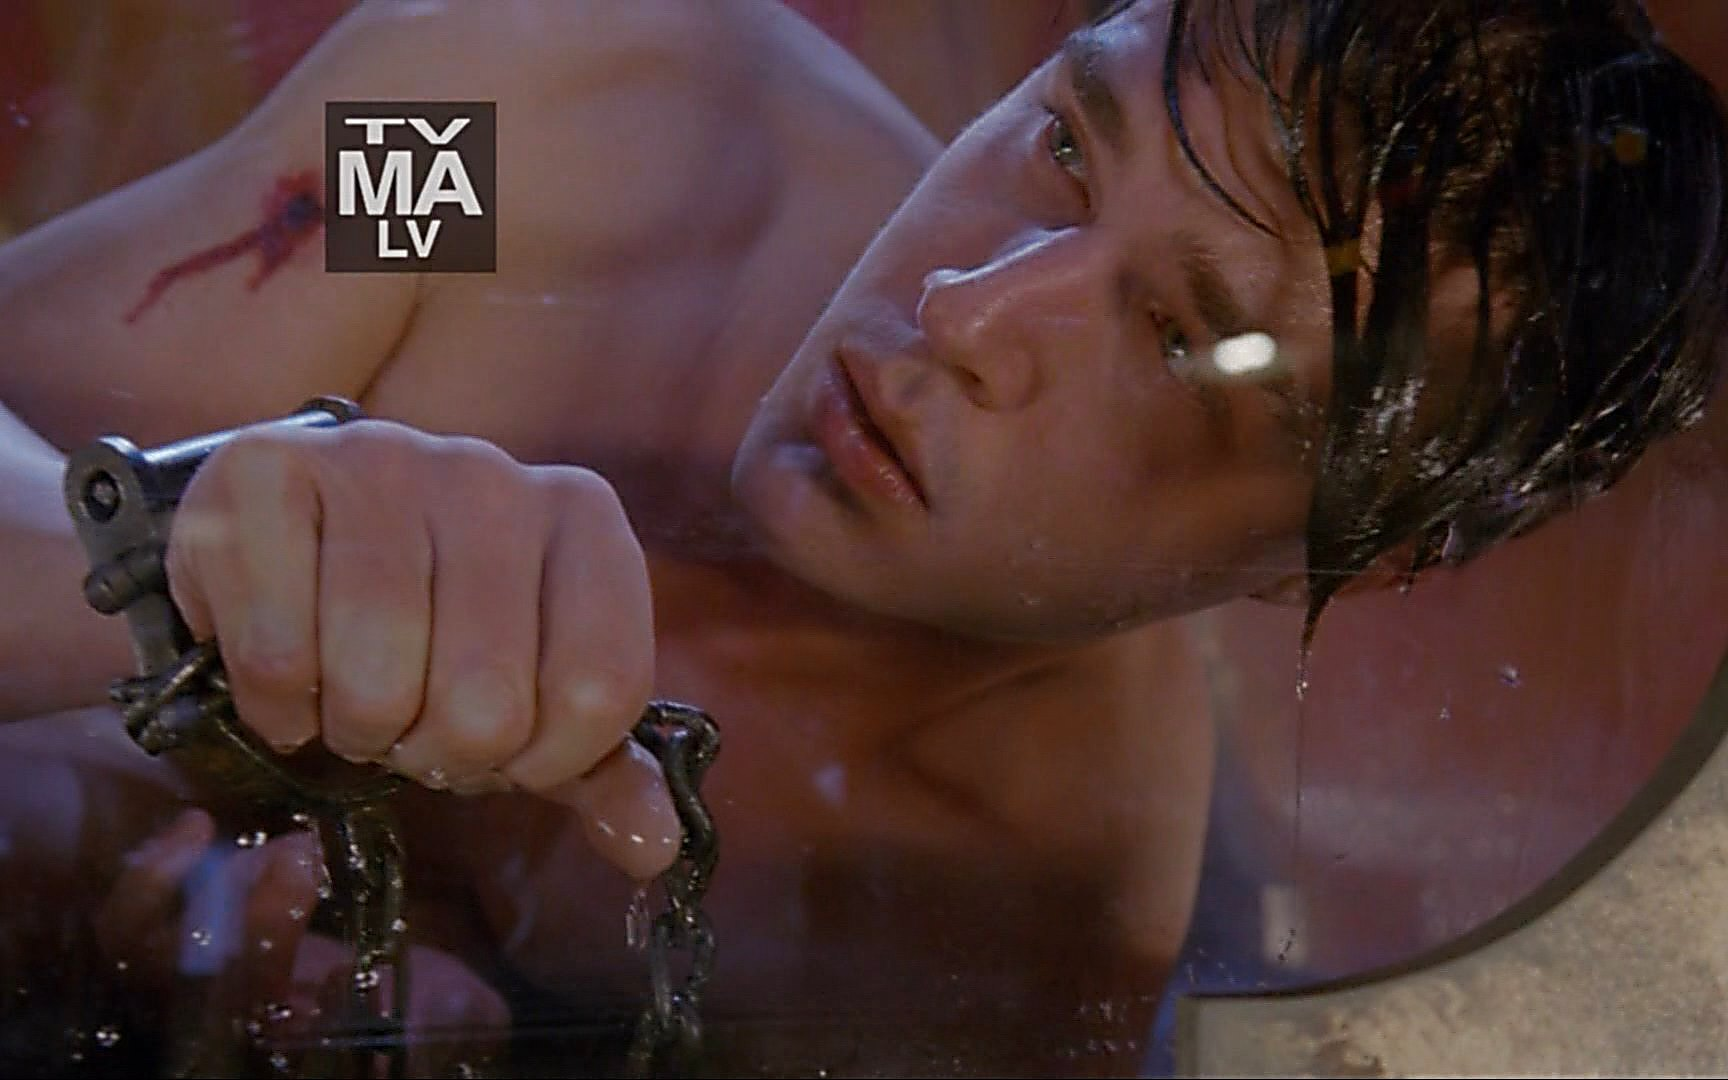 Finn Wittrock sexy shirtless scene January 22, 2015, 2am